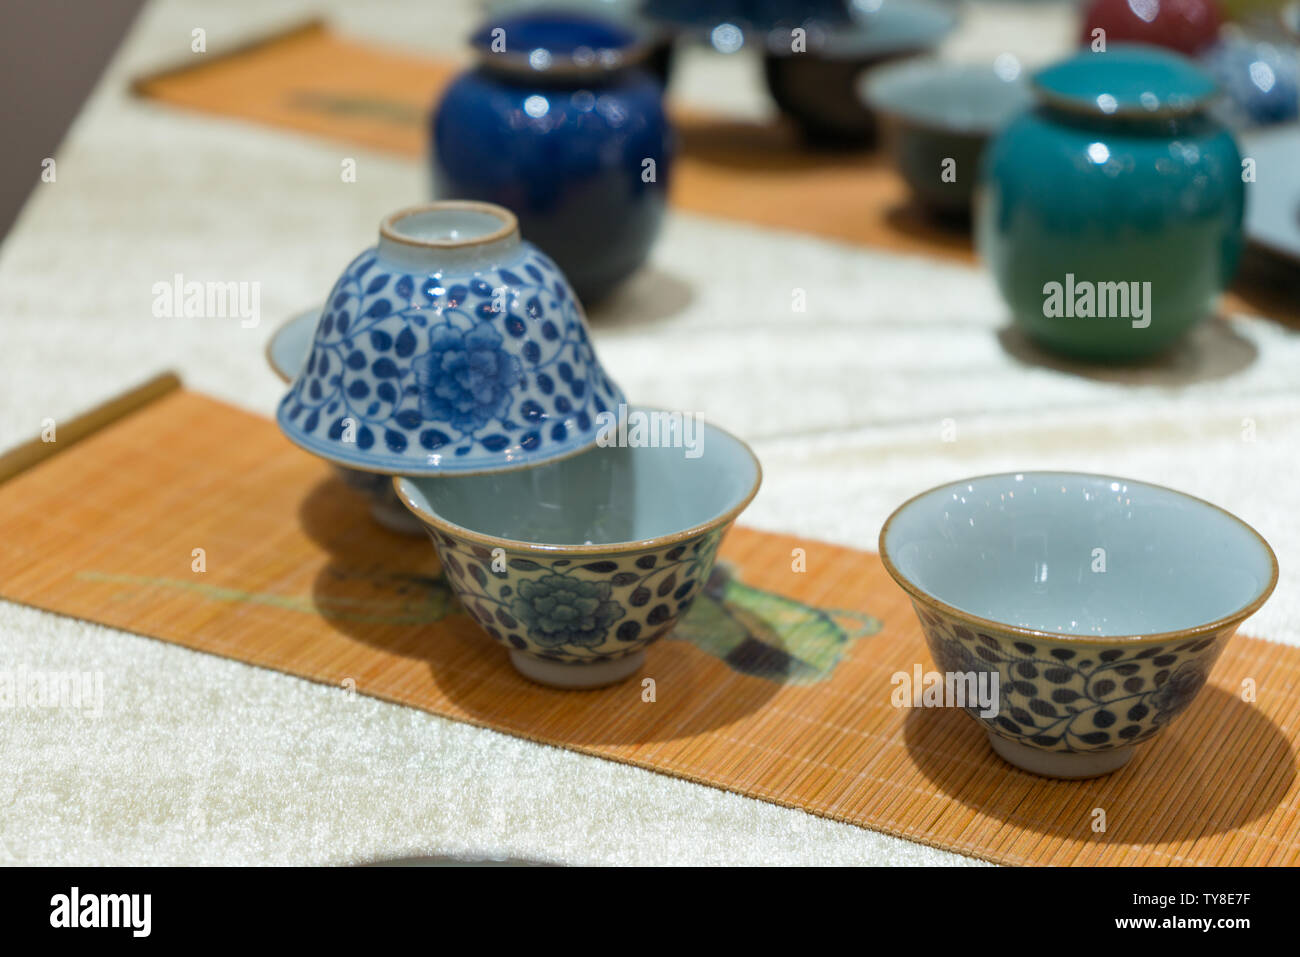 Ancient Chinese Porcelain Bowls Stock Photos & Ancient